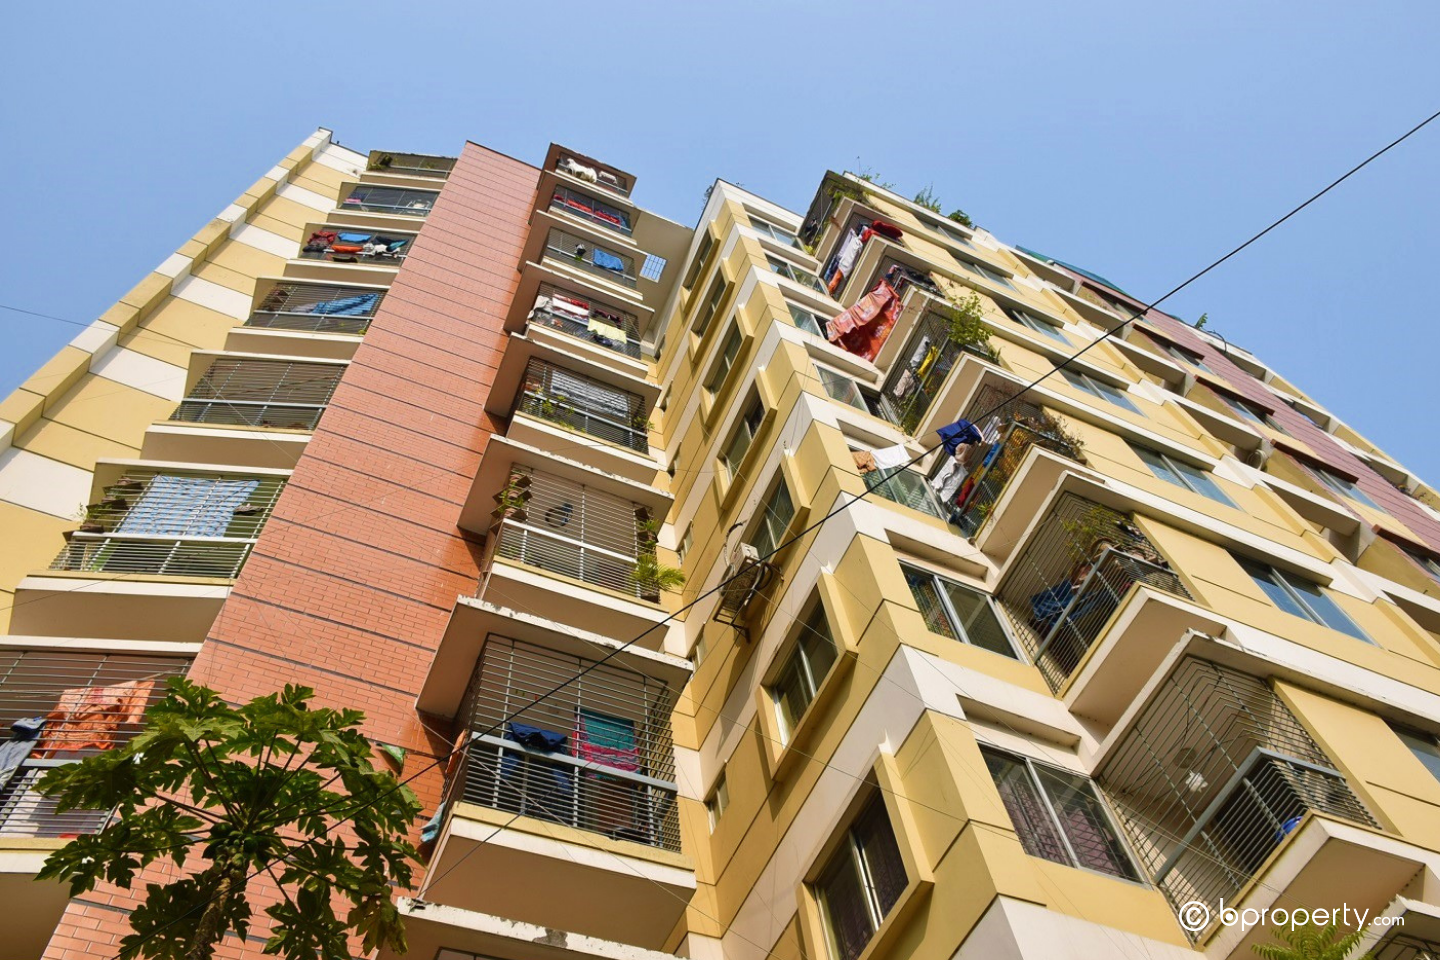 Malibagh is becoming popular day by day to buy a flat in Dhaka